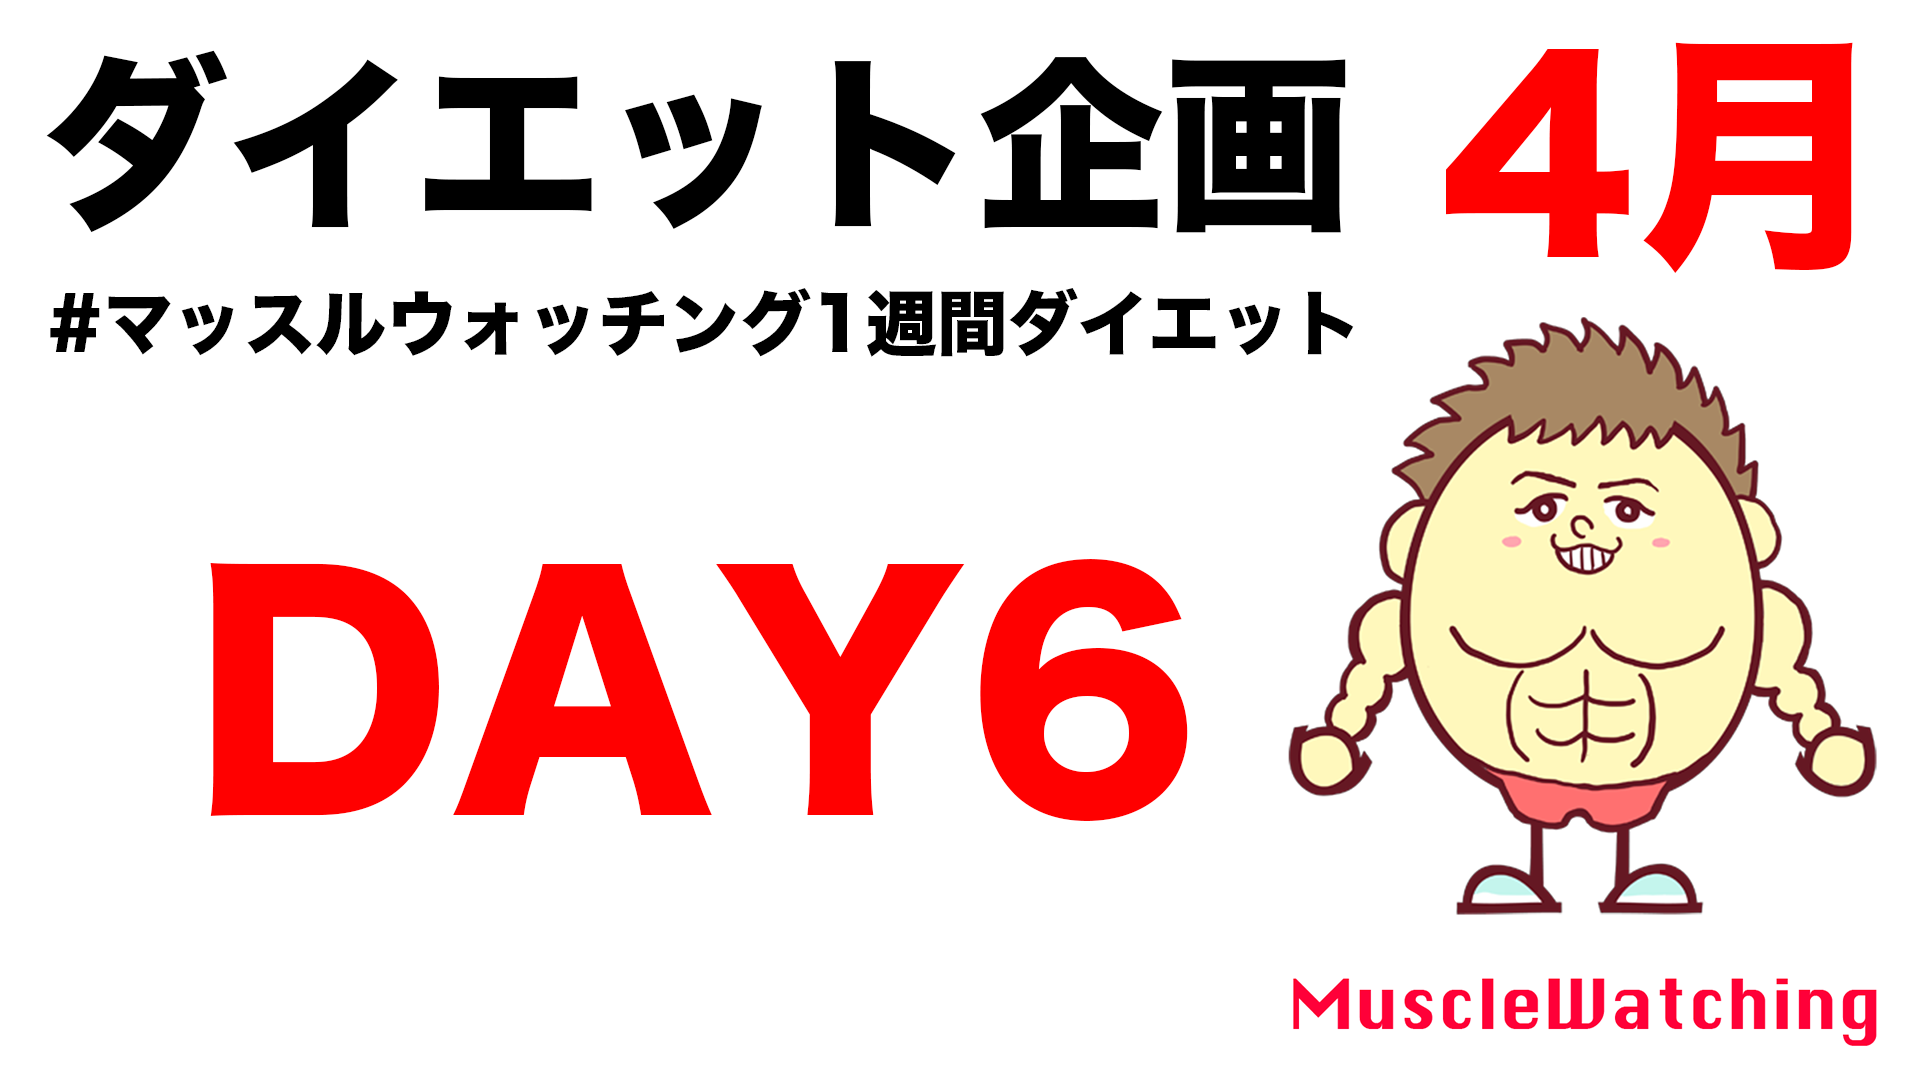 【DAY6】女性限定1週間ダイエット企画 4月| Muscle Watching